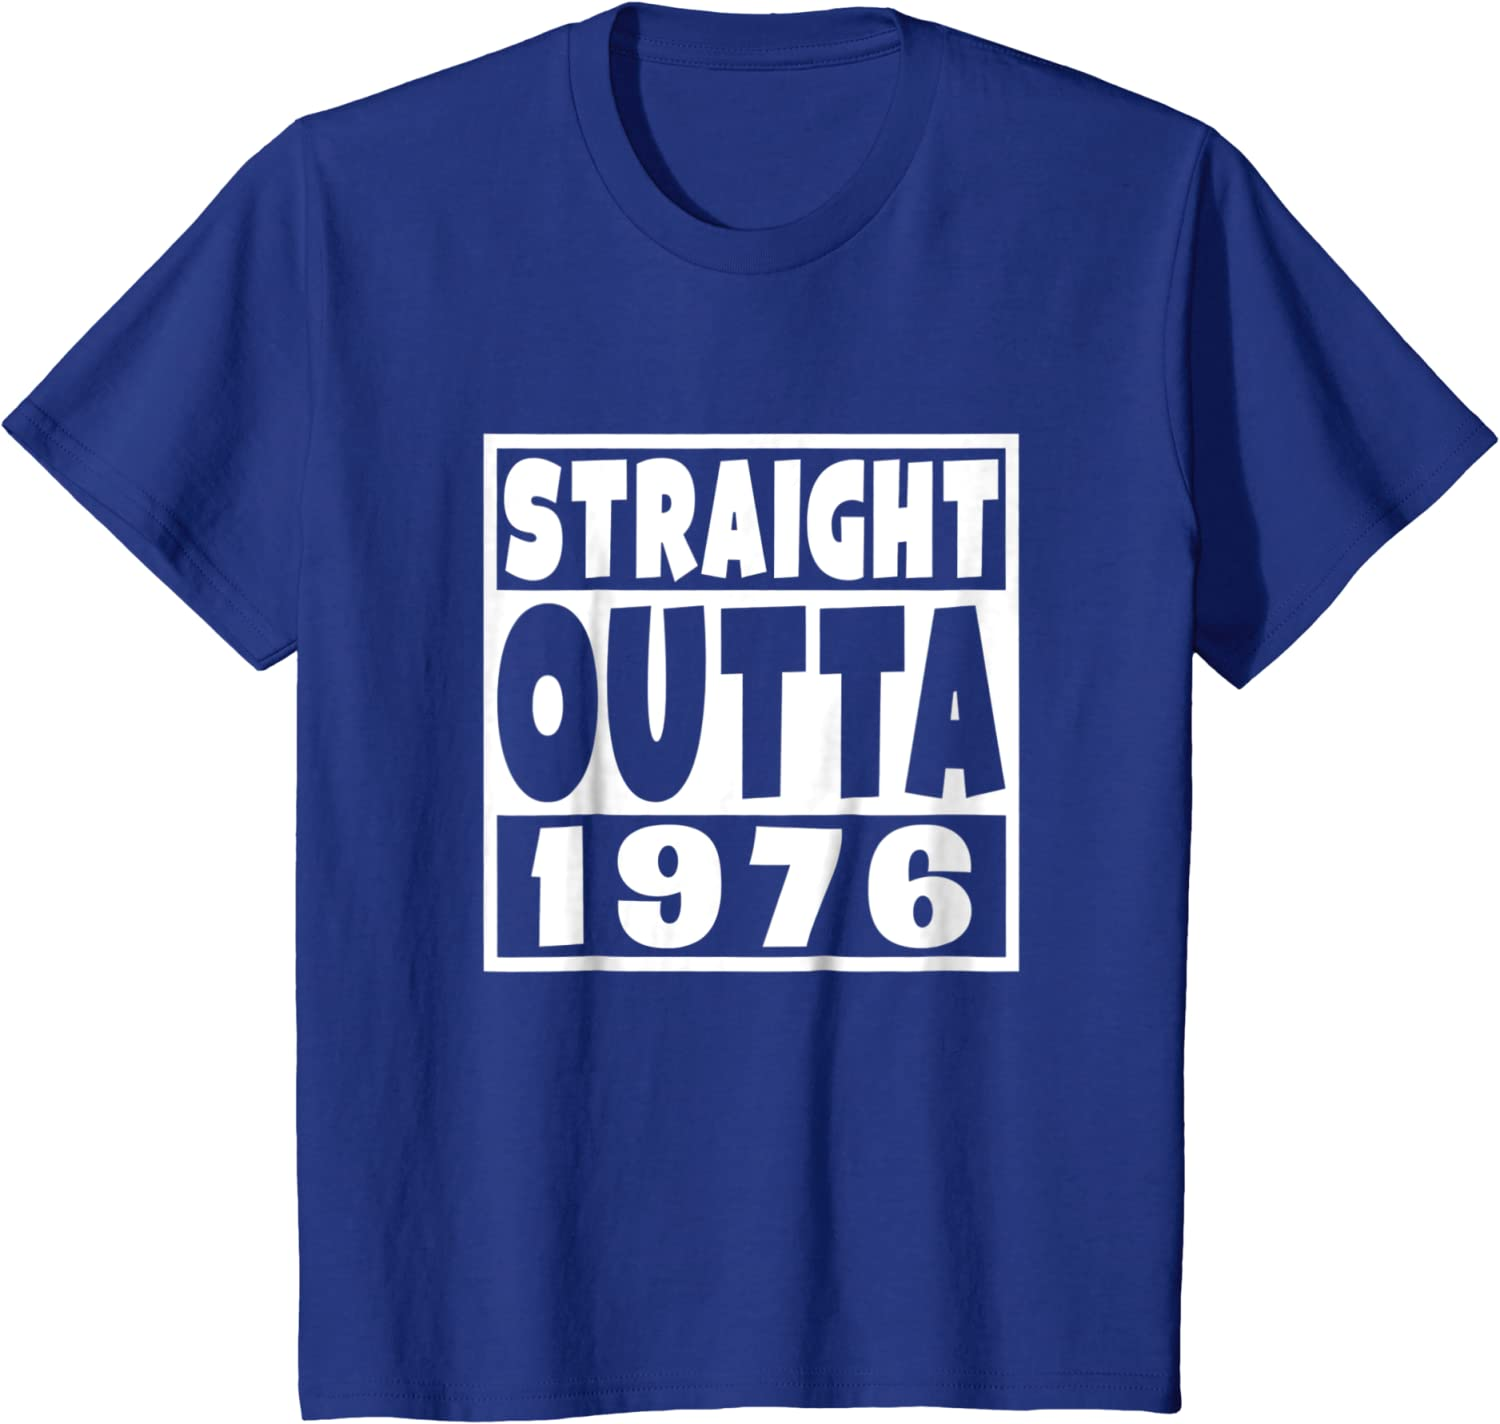 Straight Outta 1976 Shirt 42nd 42 year old Birthday Gift